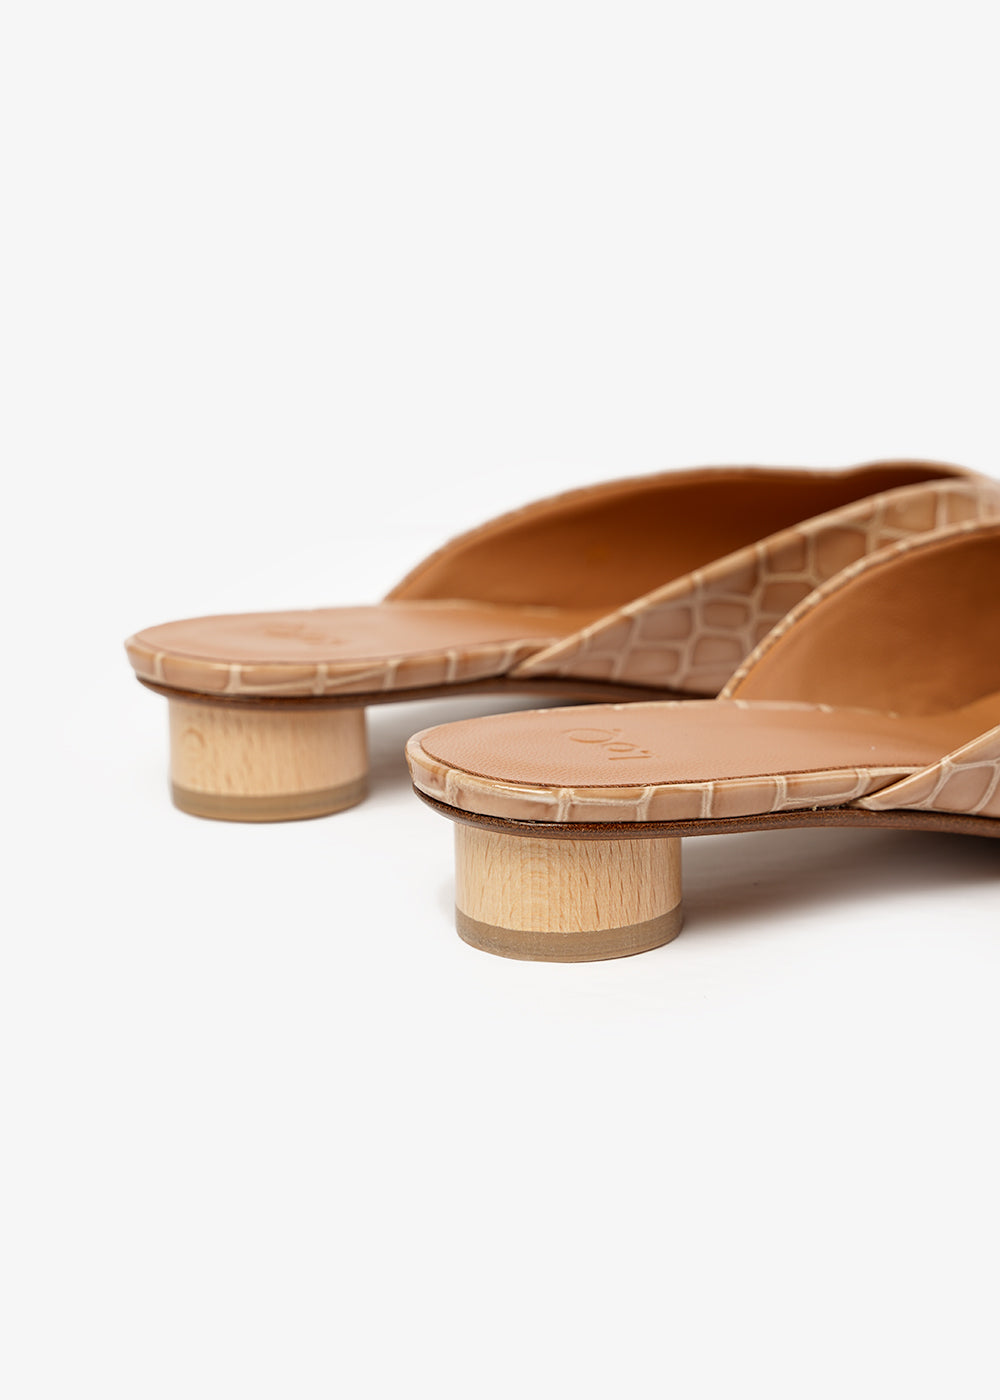 LoQ Dune Carmen Mules — Shop sustainable fashion and slow fashion at New Classics Studios